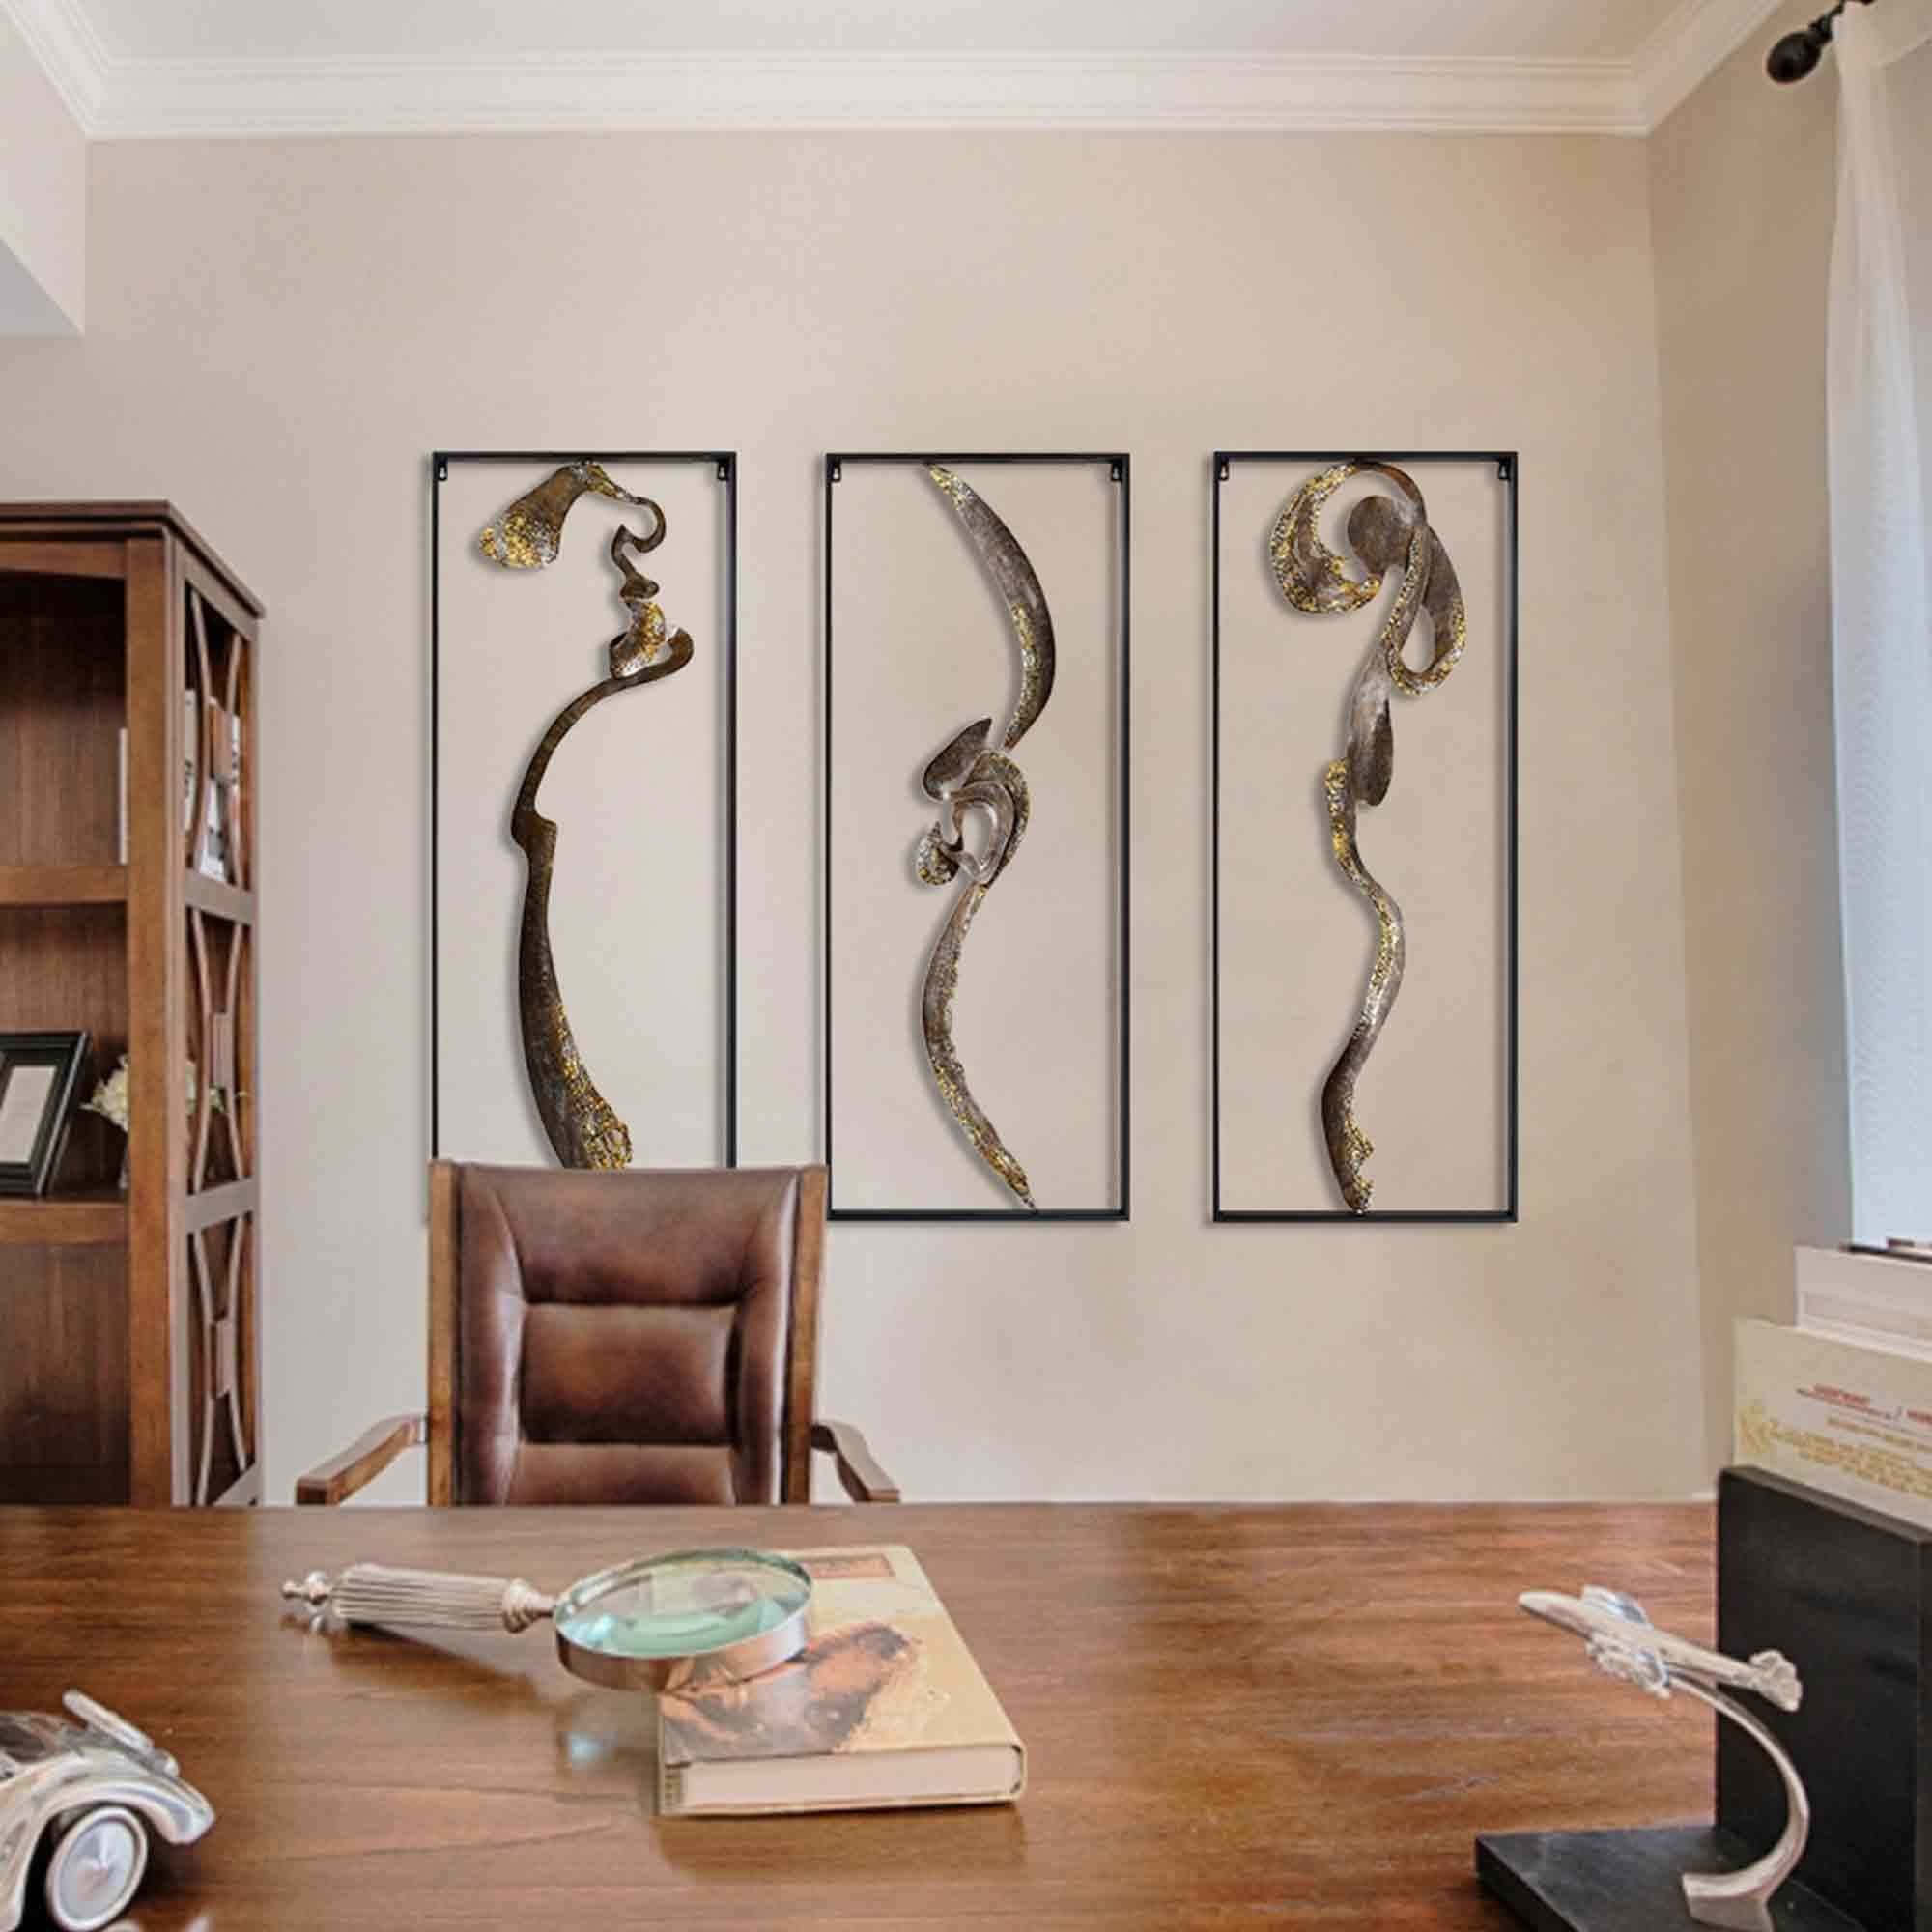 Hot Item Handmade Abstract Asian Metal Wall Art Decor Chinese Calligraphy Art Iron Framed For Home Decor